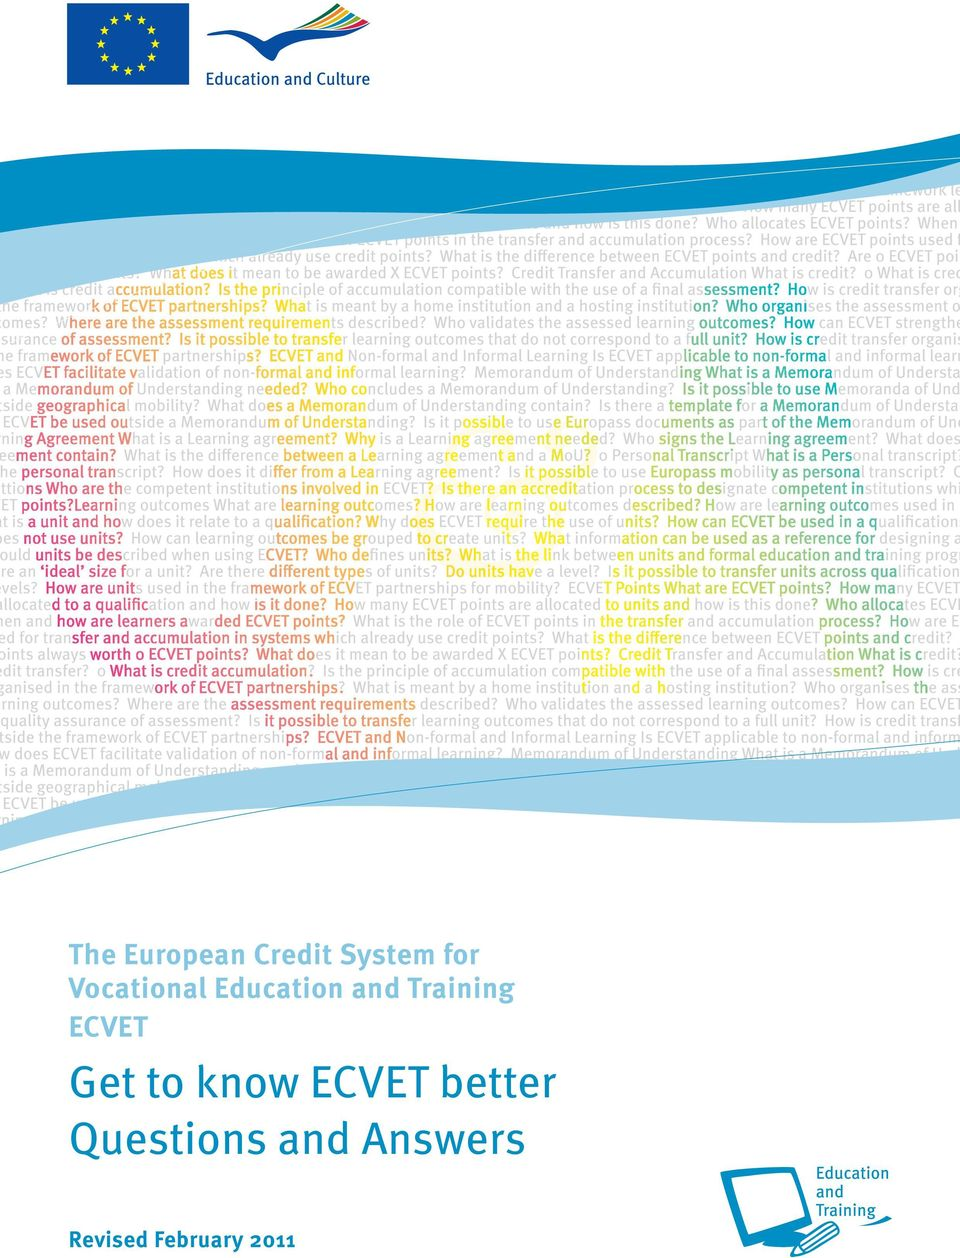 ECVET Get to know ECVET better